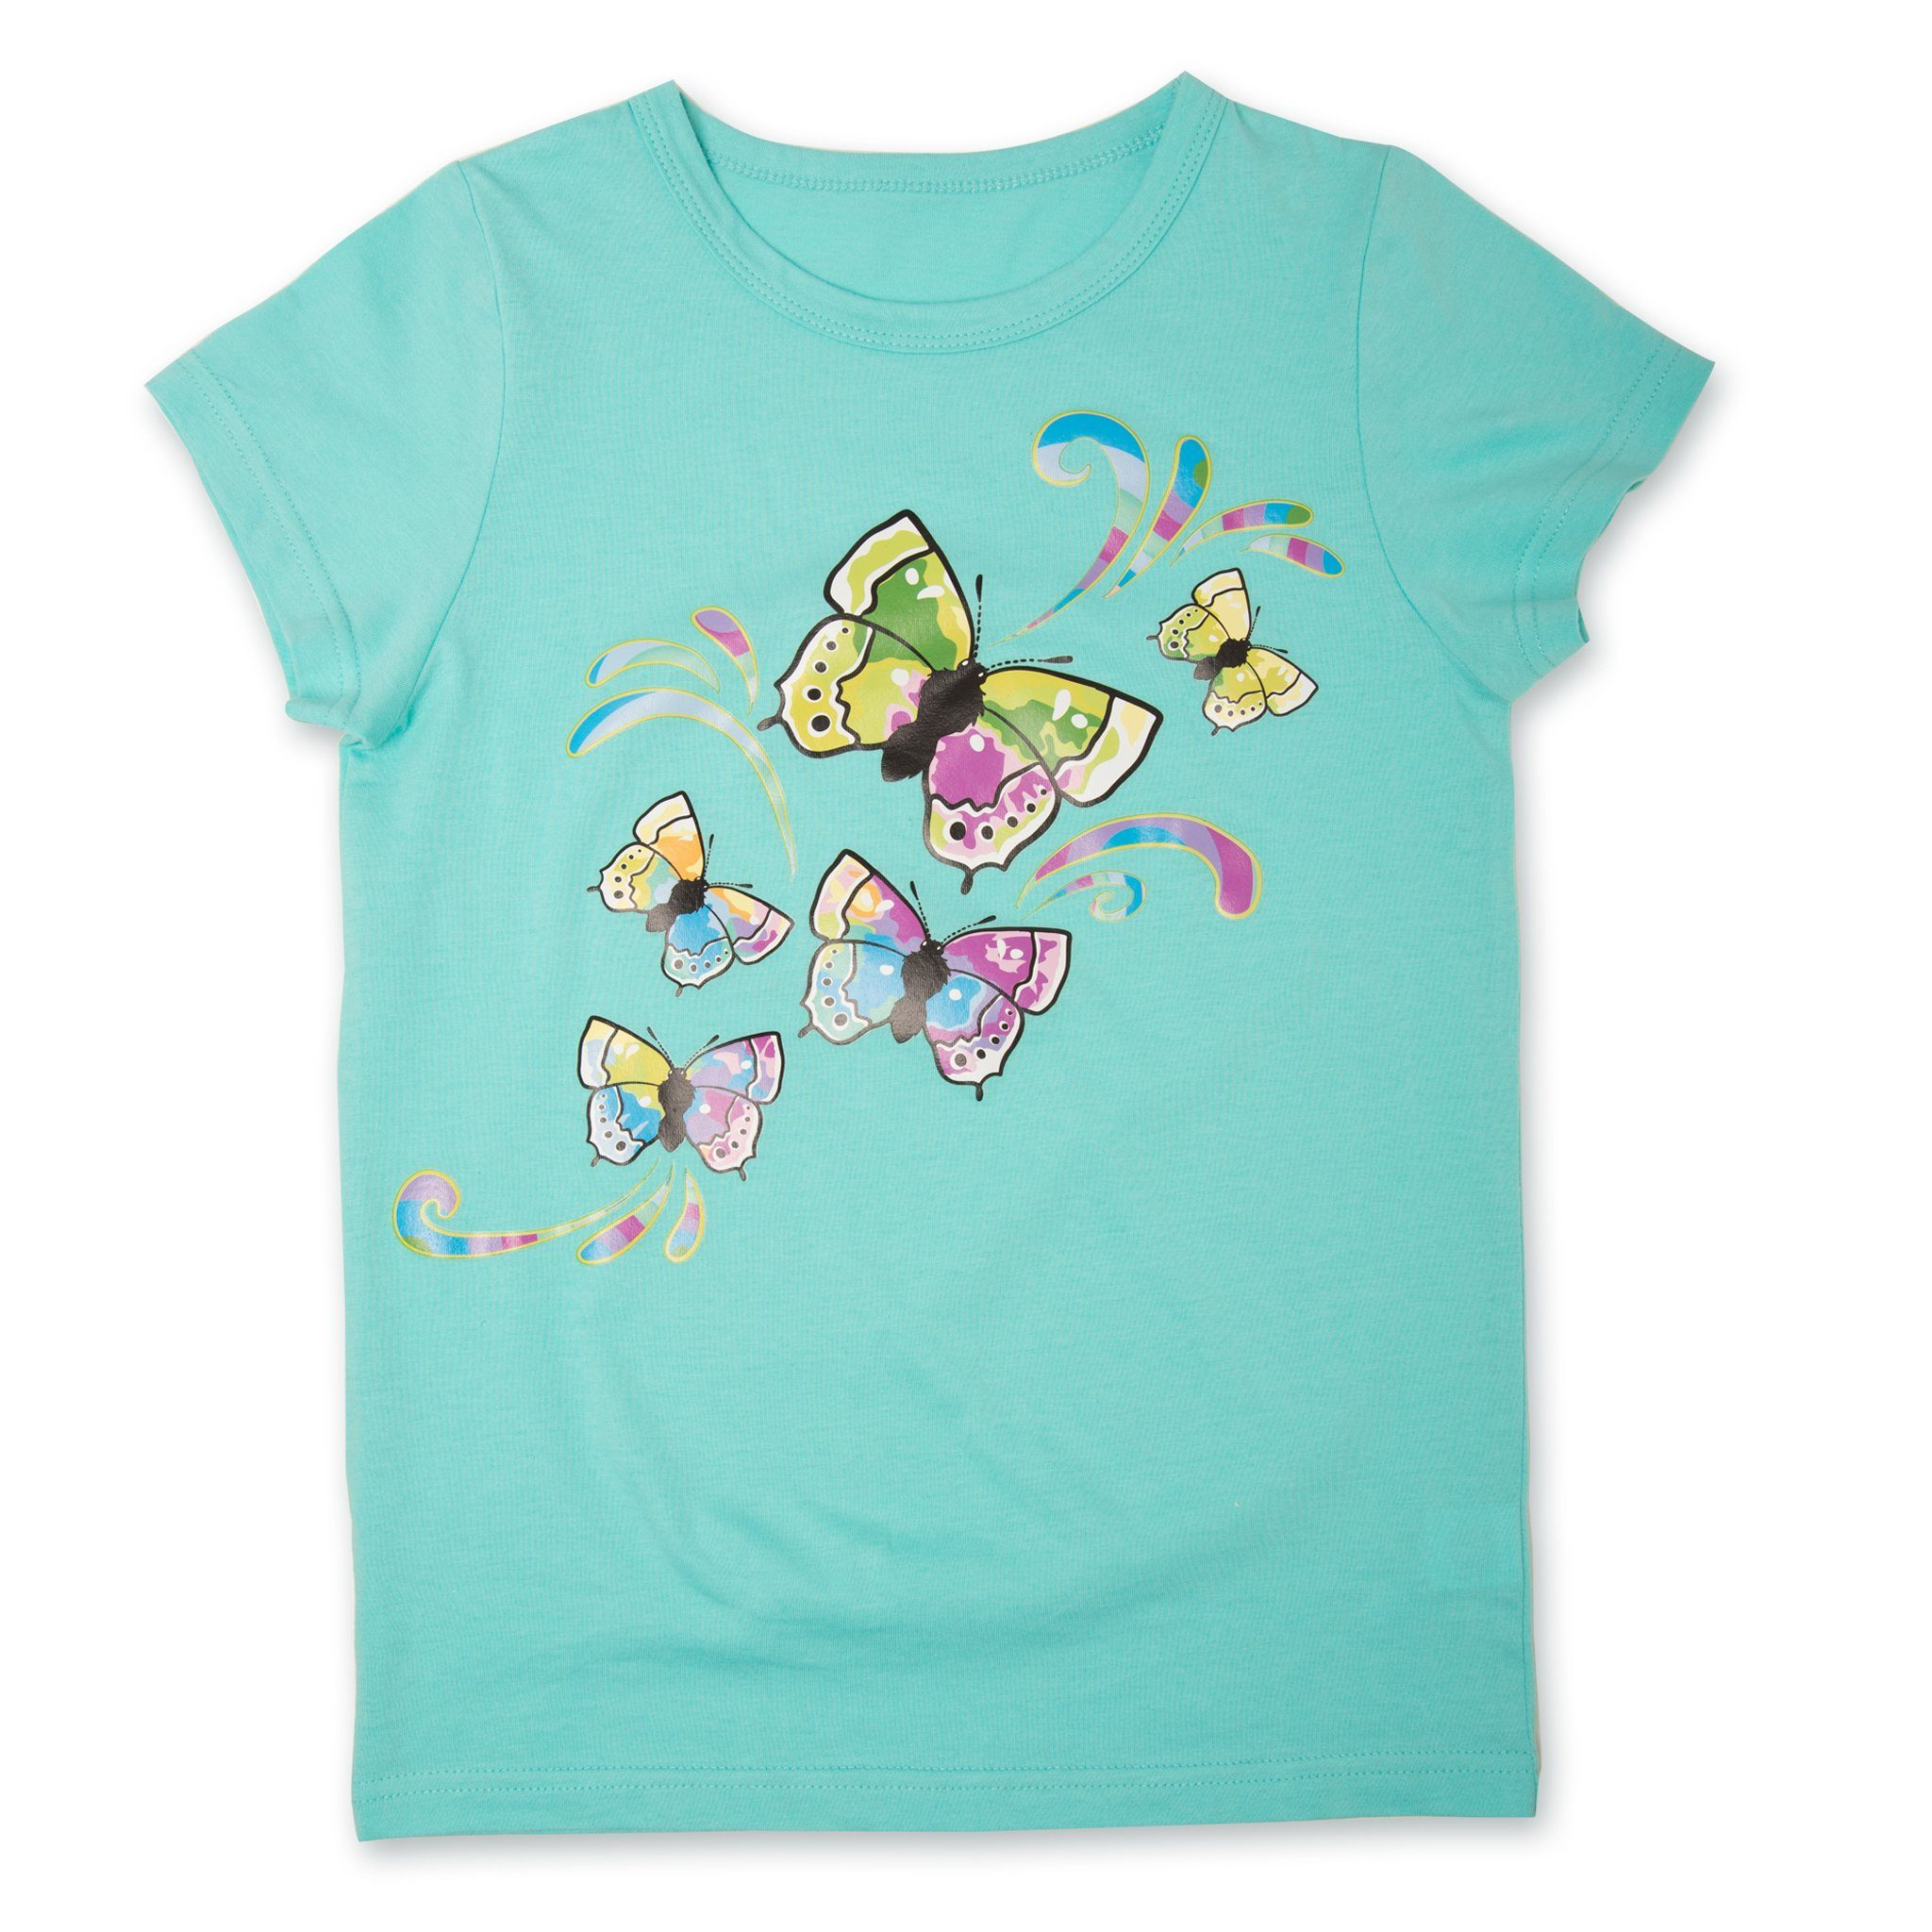 Taryn Starter Shirt for Girls mint green t-shirt with multi-colour butterfly graphic for girls.